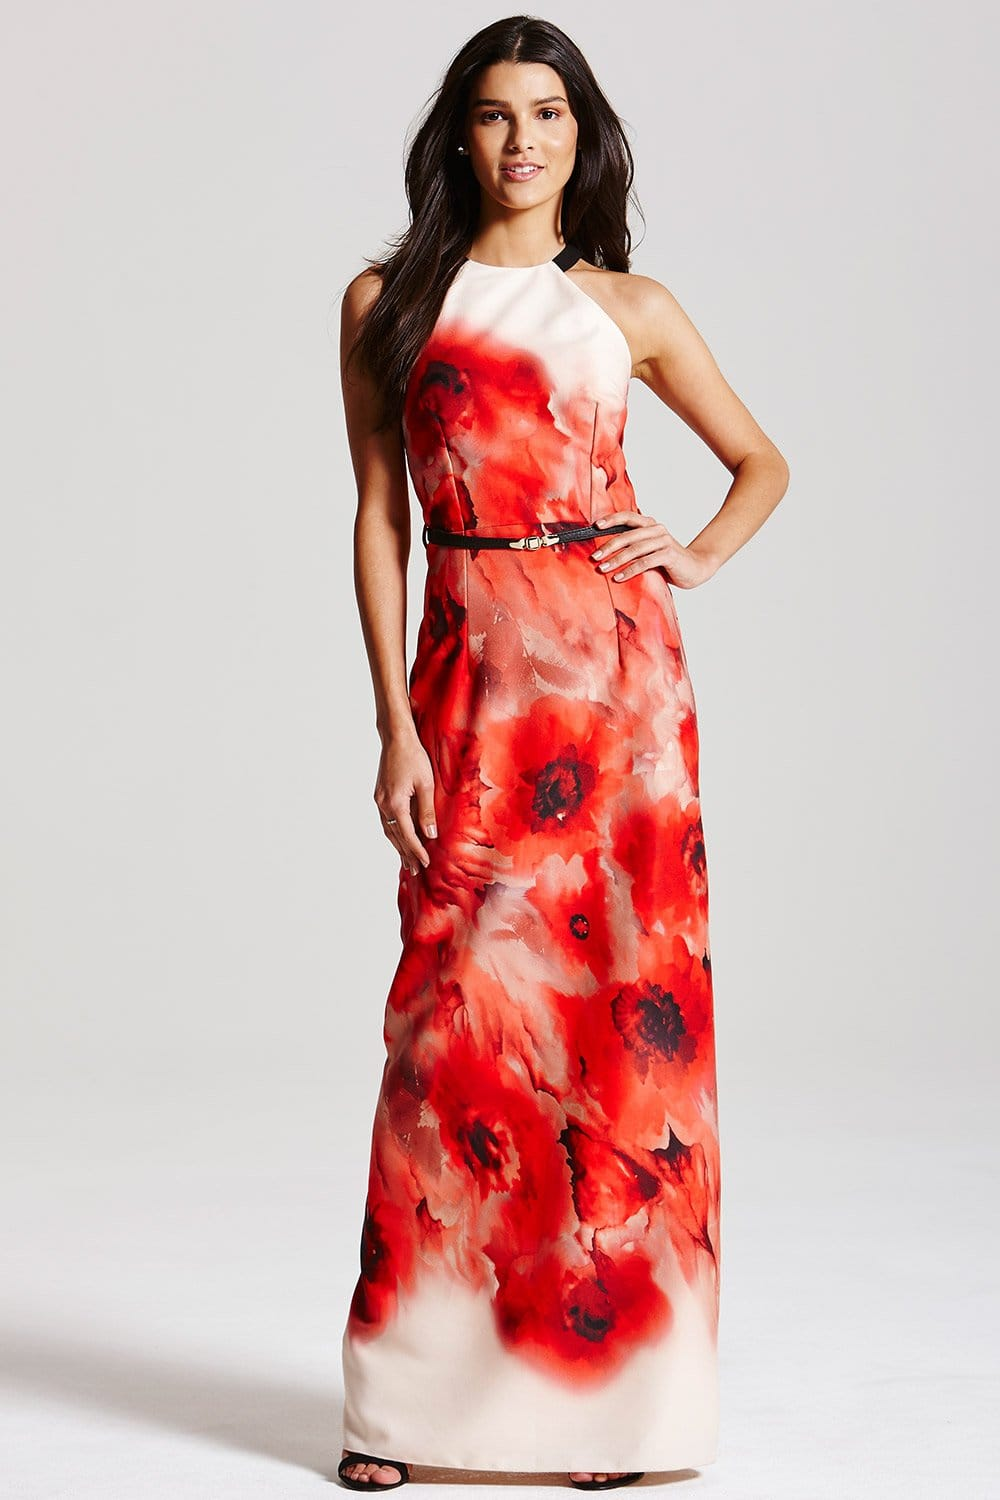 Blurred Poppy Print Maxi Dress  from Little Mistress UK